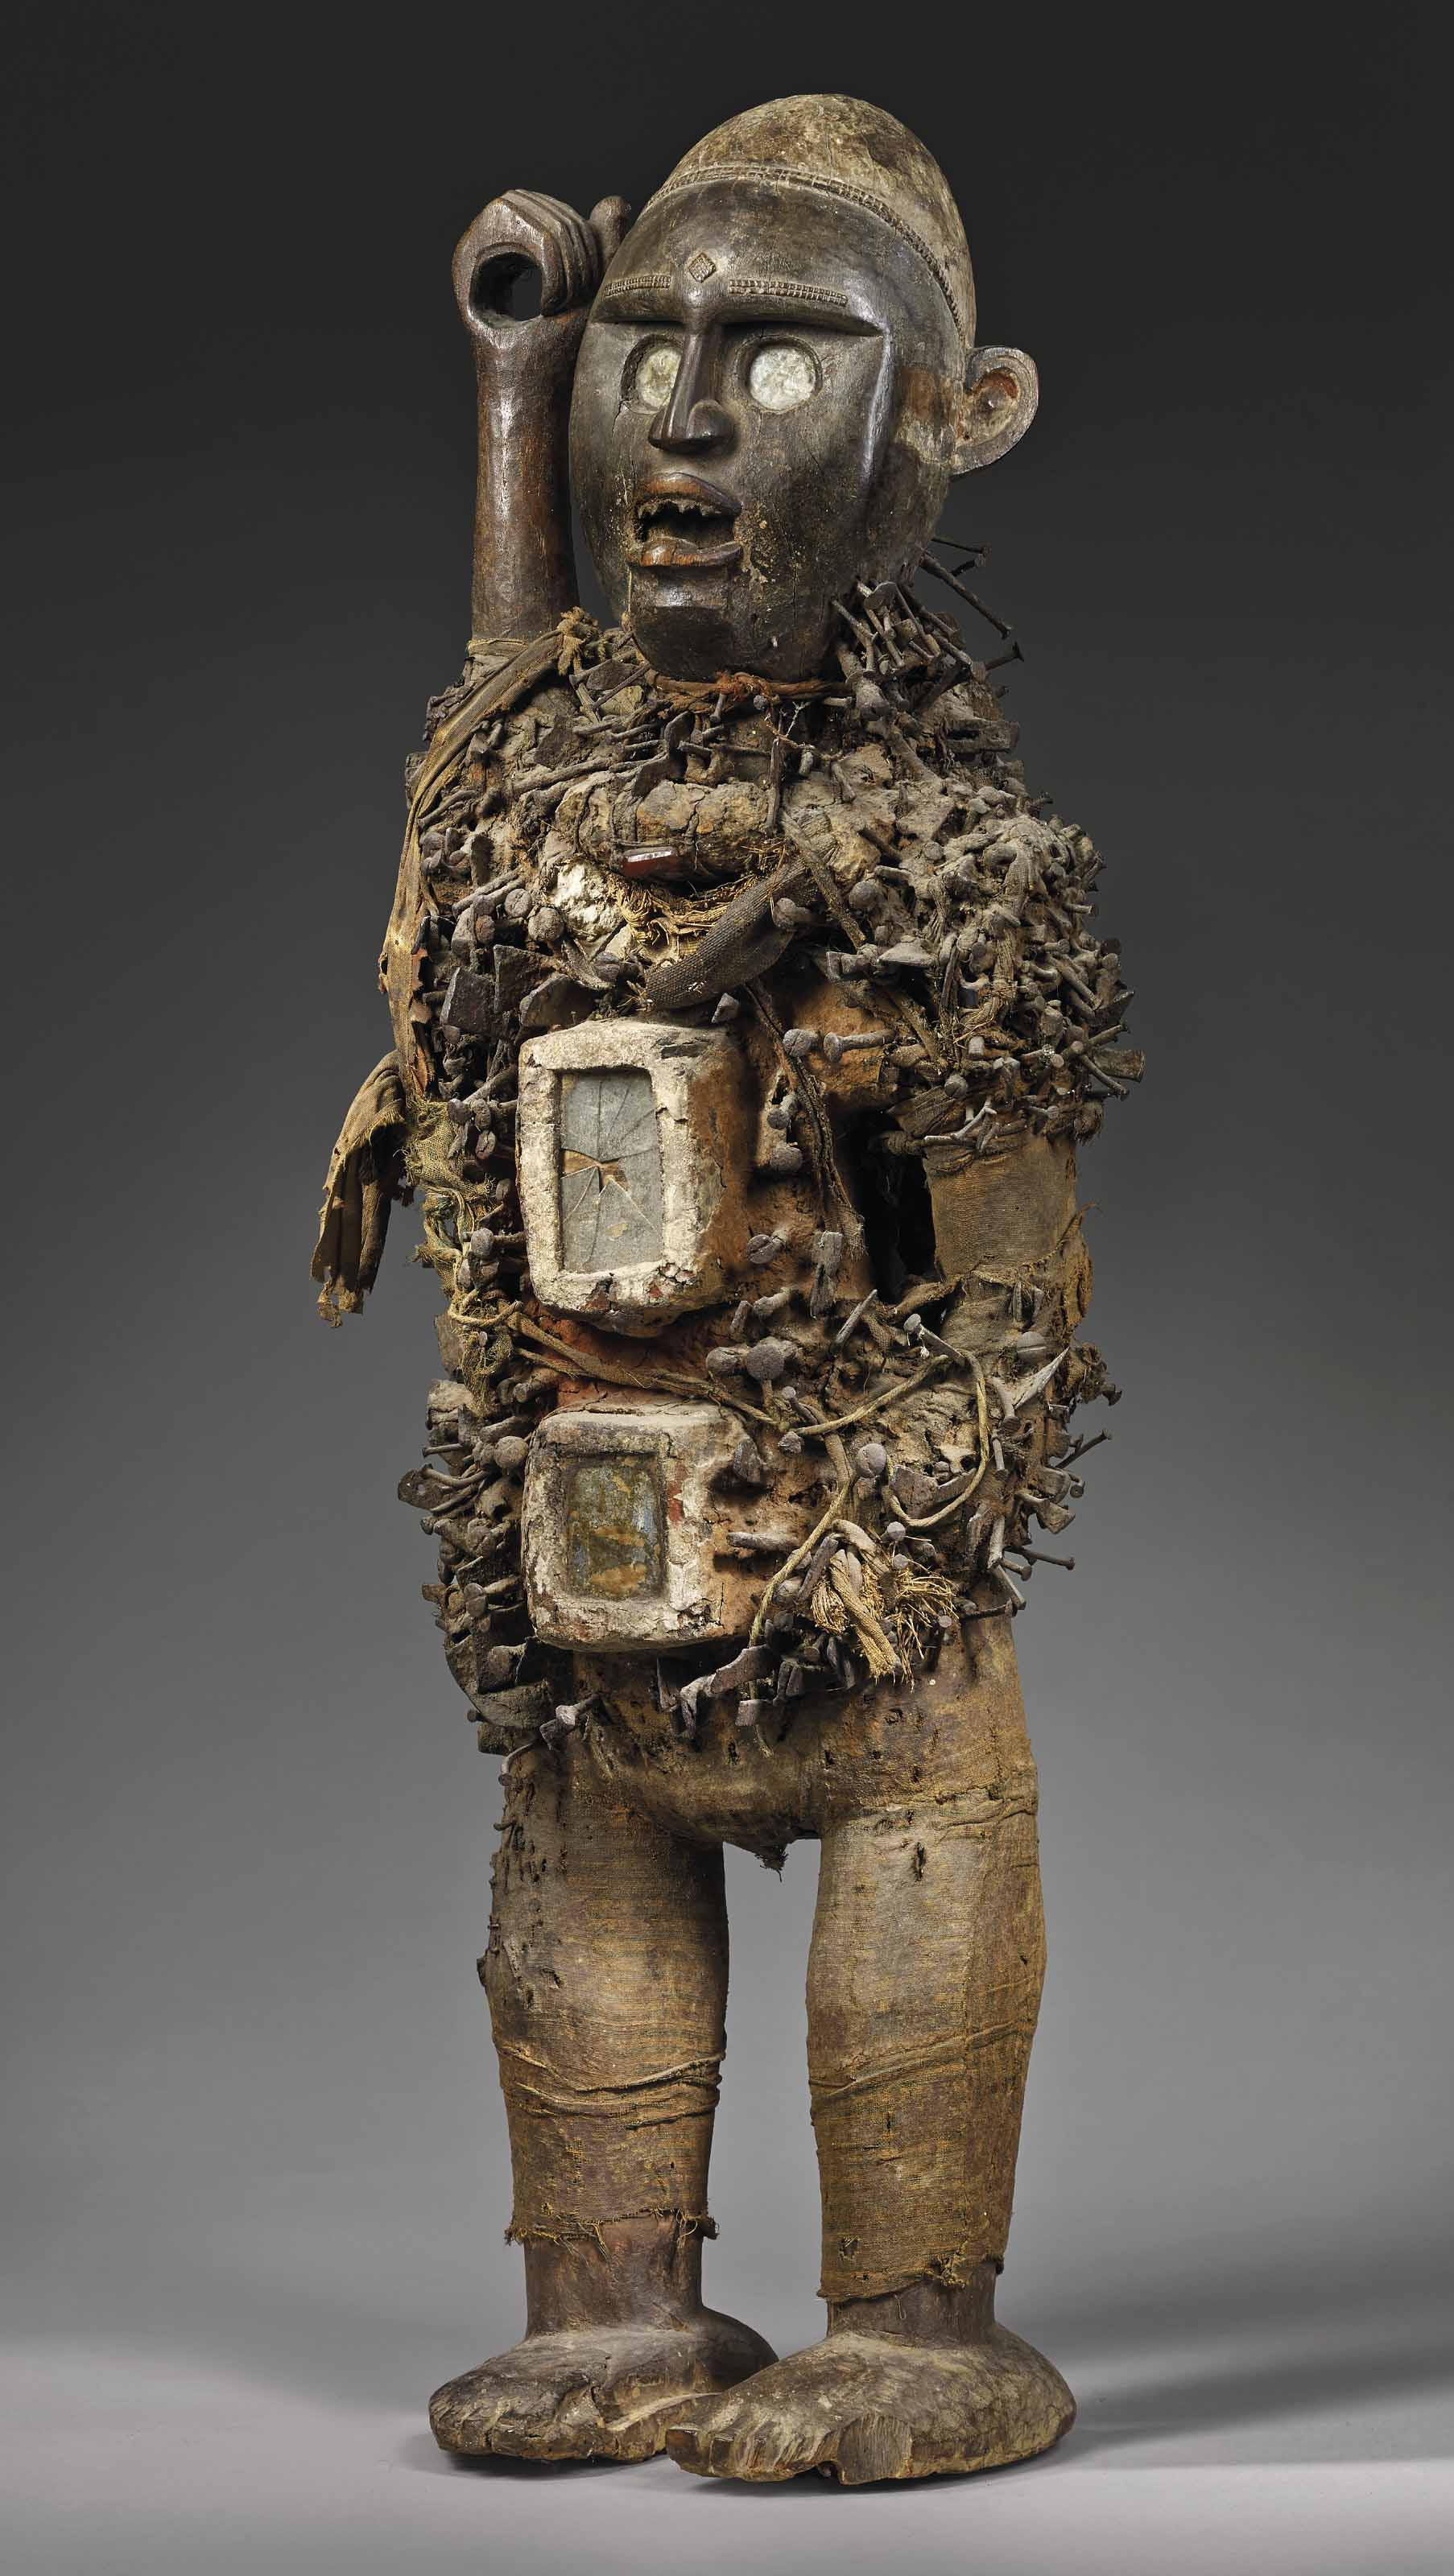 AKongo-Yombe nkisi nkondi statue,Democratic Republic of Congo— a work in which some see a resemblance to Basquiat's Warrior. Height 95 cm (37½ in). Sold for €727,500 on 27 June 2018 at Christie's in Paris